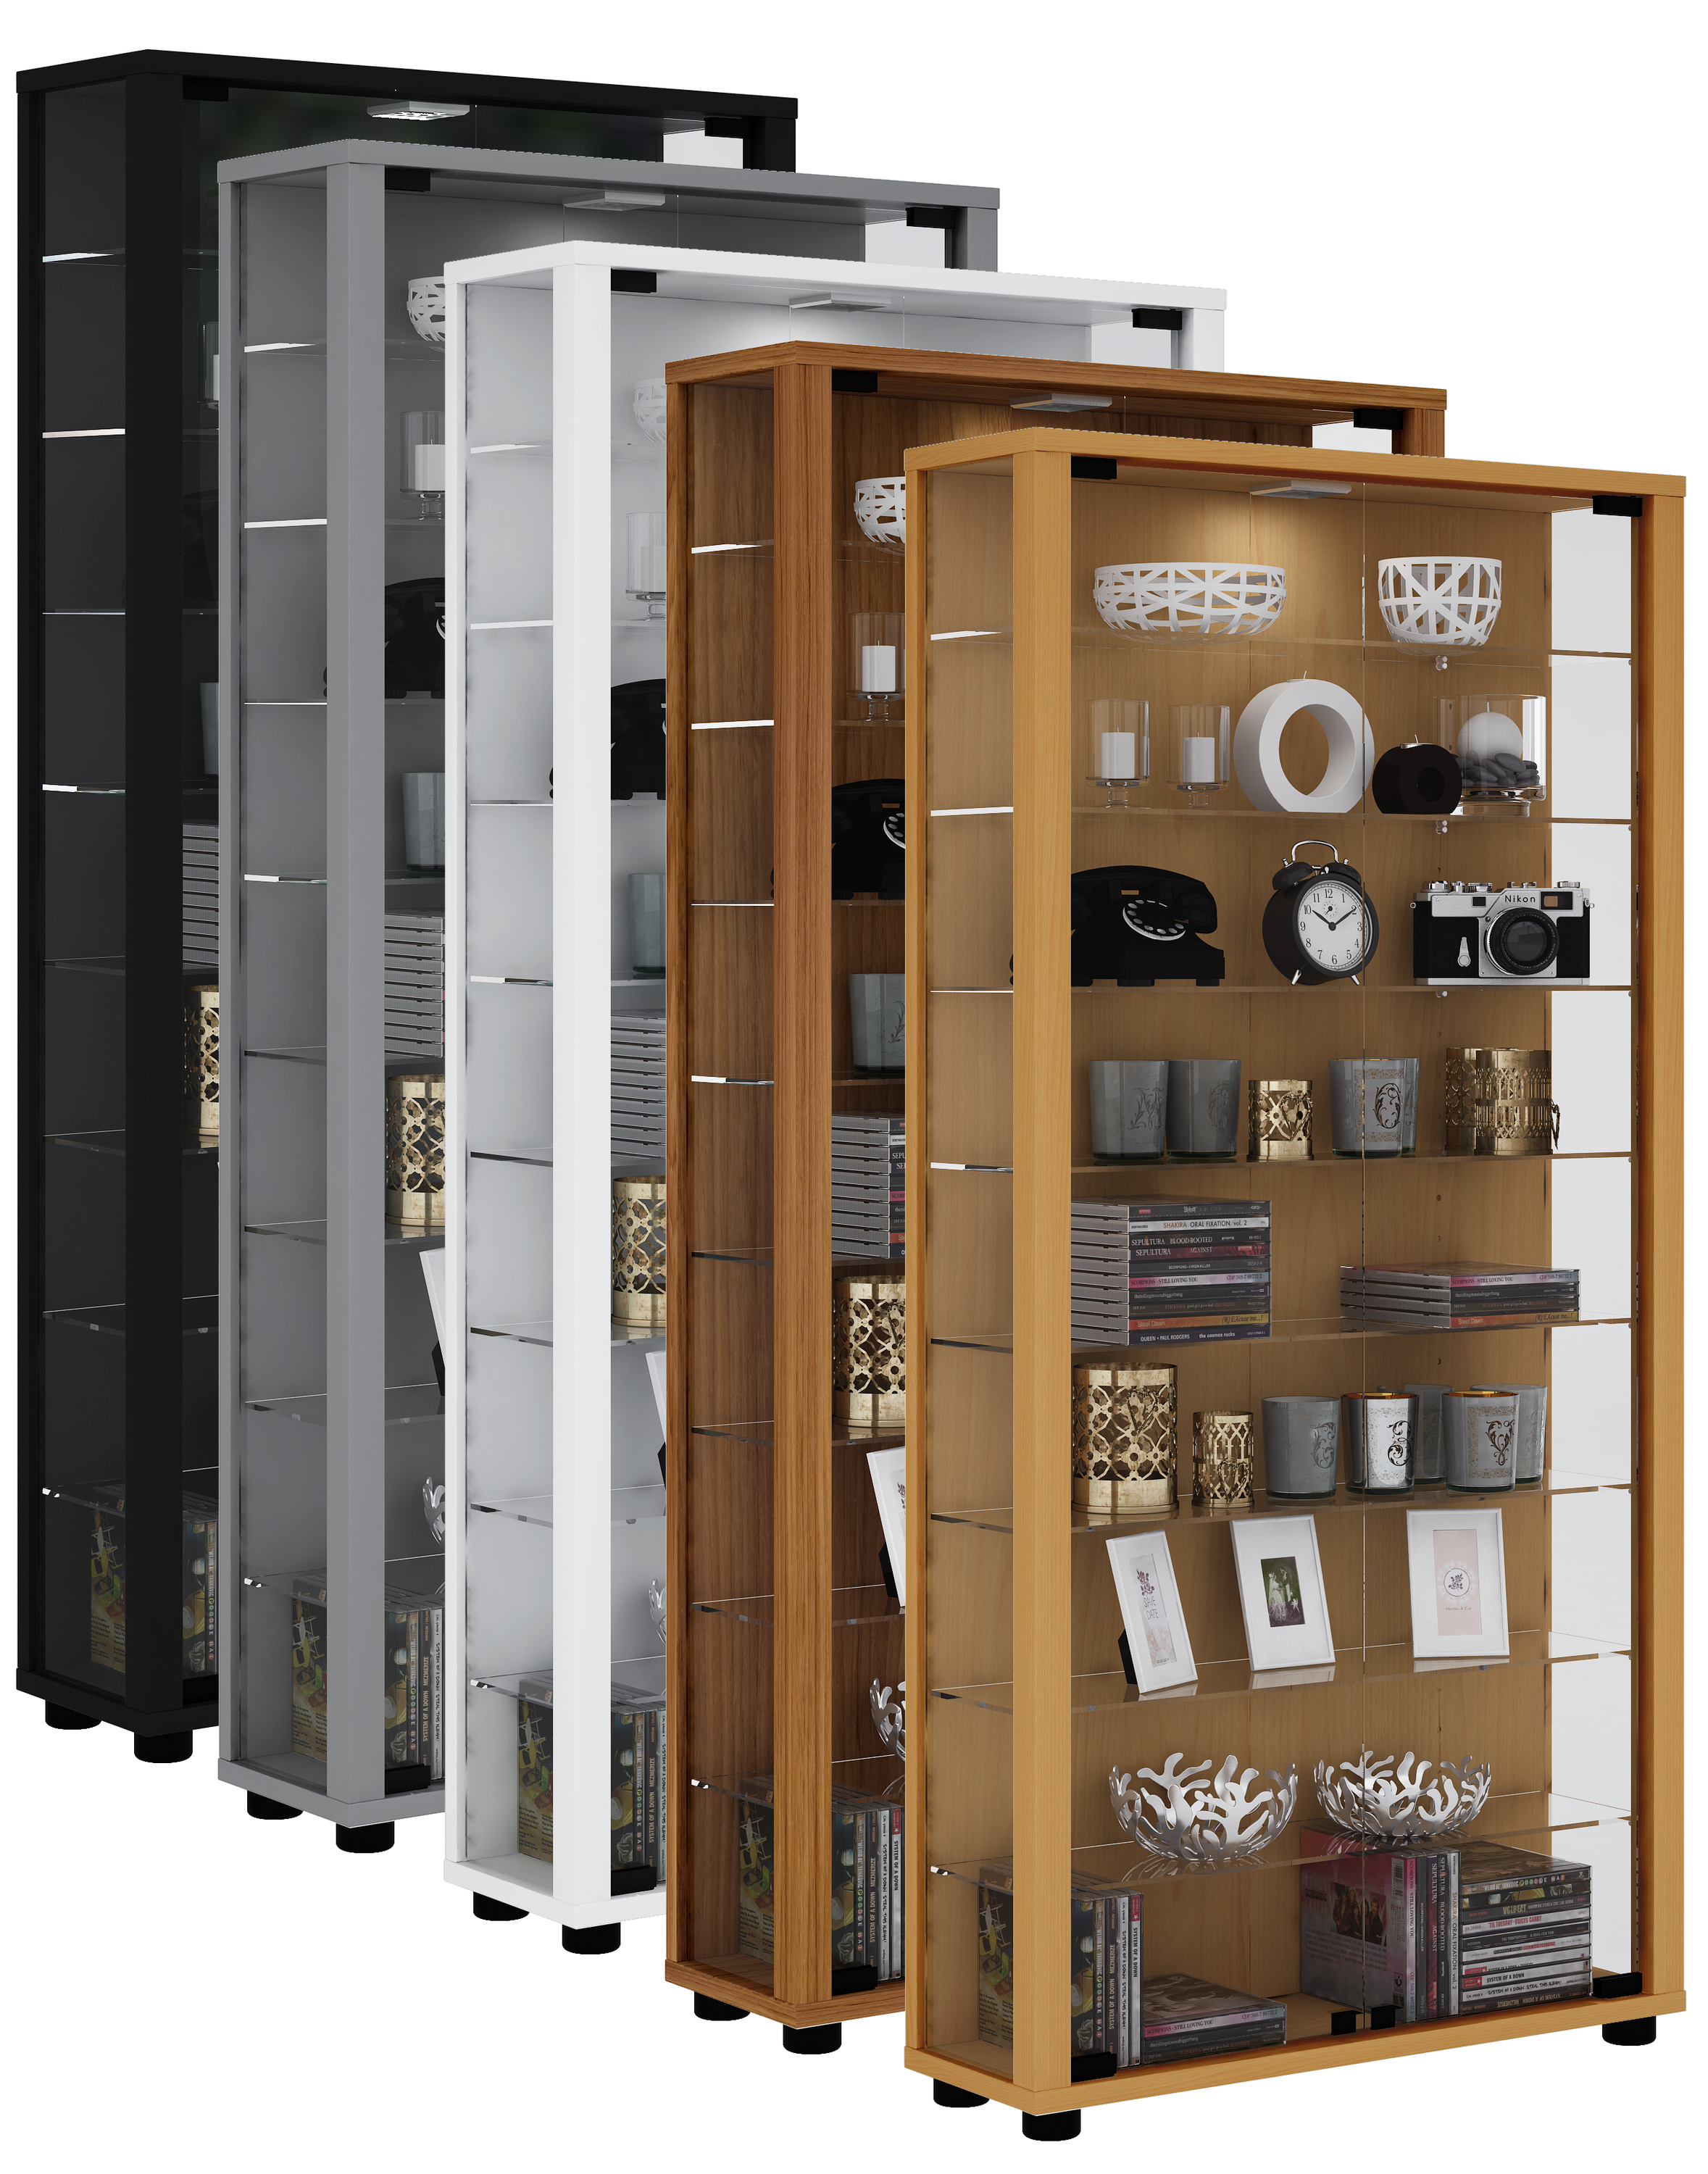 vcm gruppe vcm sammelvitrine standvitrine glasvitrine glasregal vitrine glas schaukasten lumo. Black Bedroom Furniture Sets. Home Design Ideas